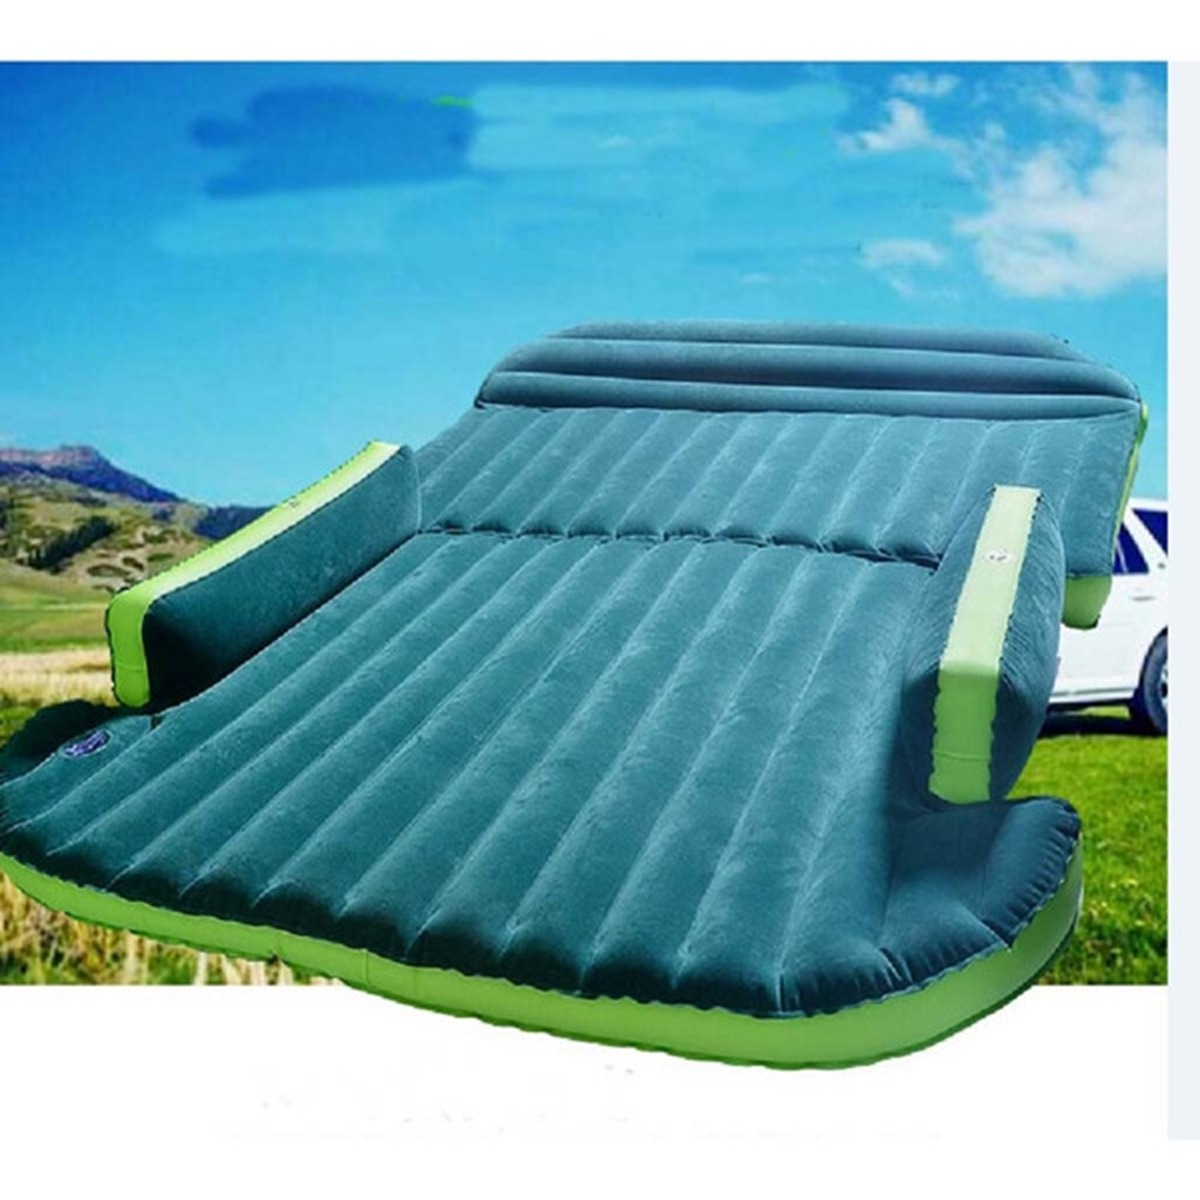 Car Inflatable Mattress - Seat Travel Bed Air Bed Cushion Travel Beds Sofa with Pump Camping Moisture-proof Pad Outdoor for SUV image